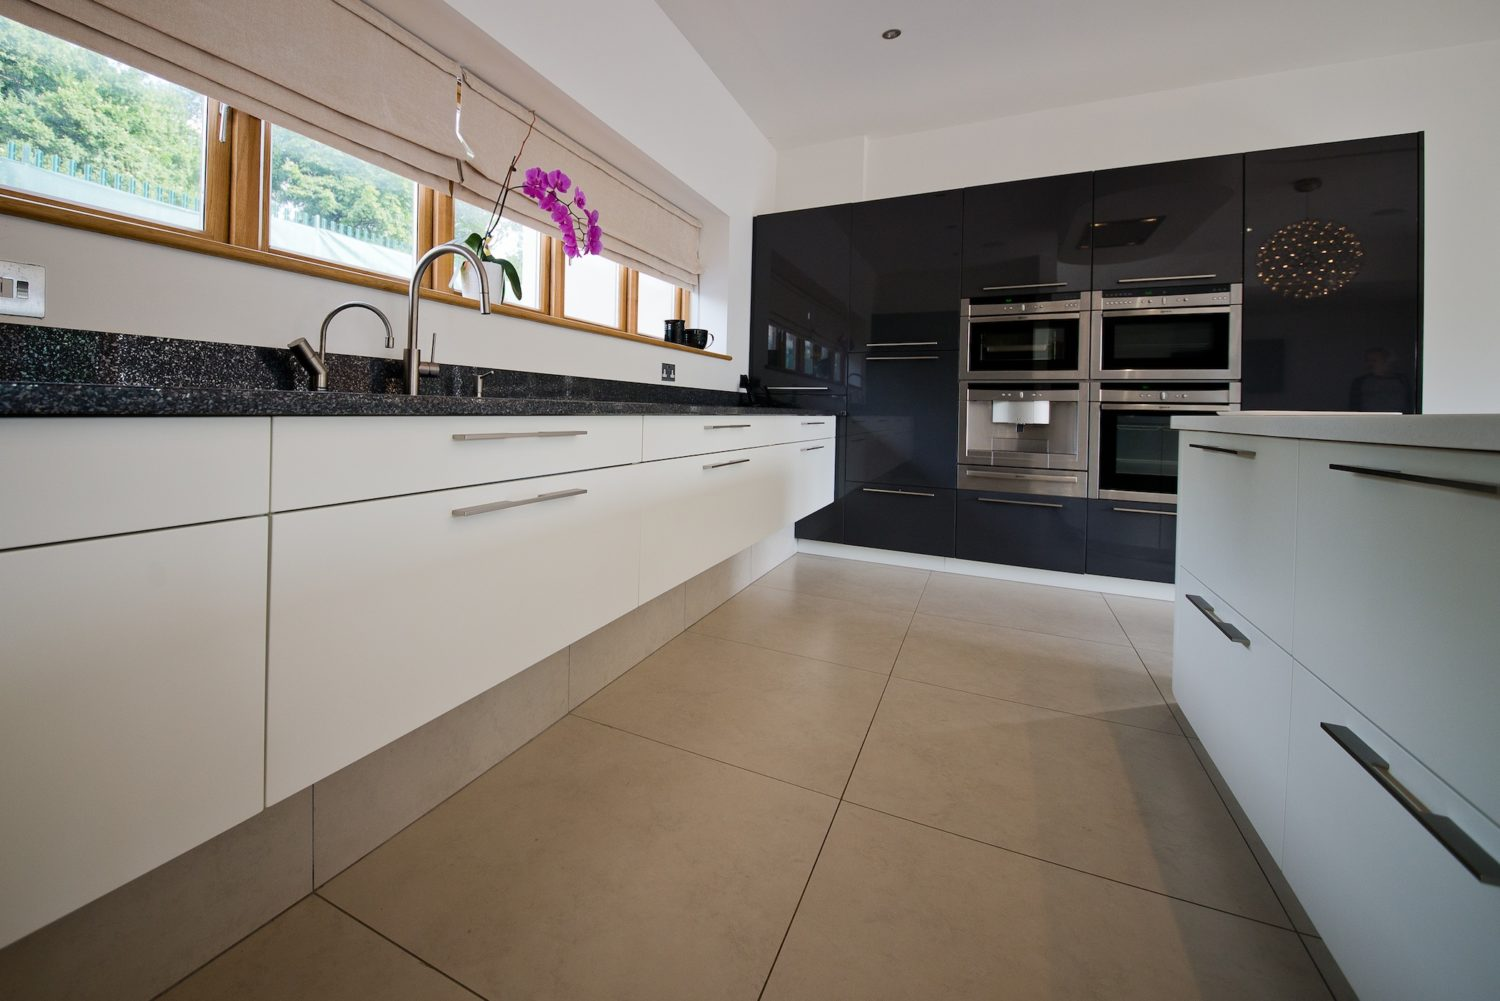 Kitchen design with black and white units